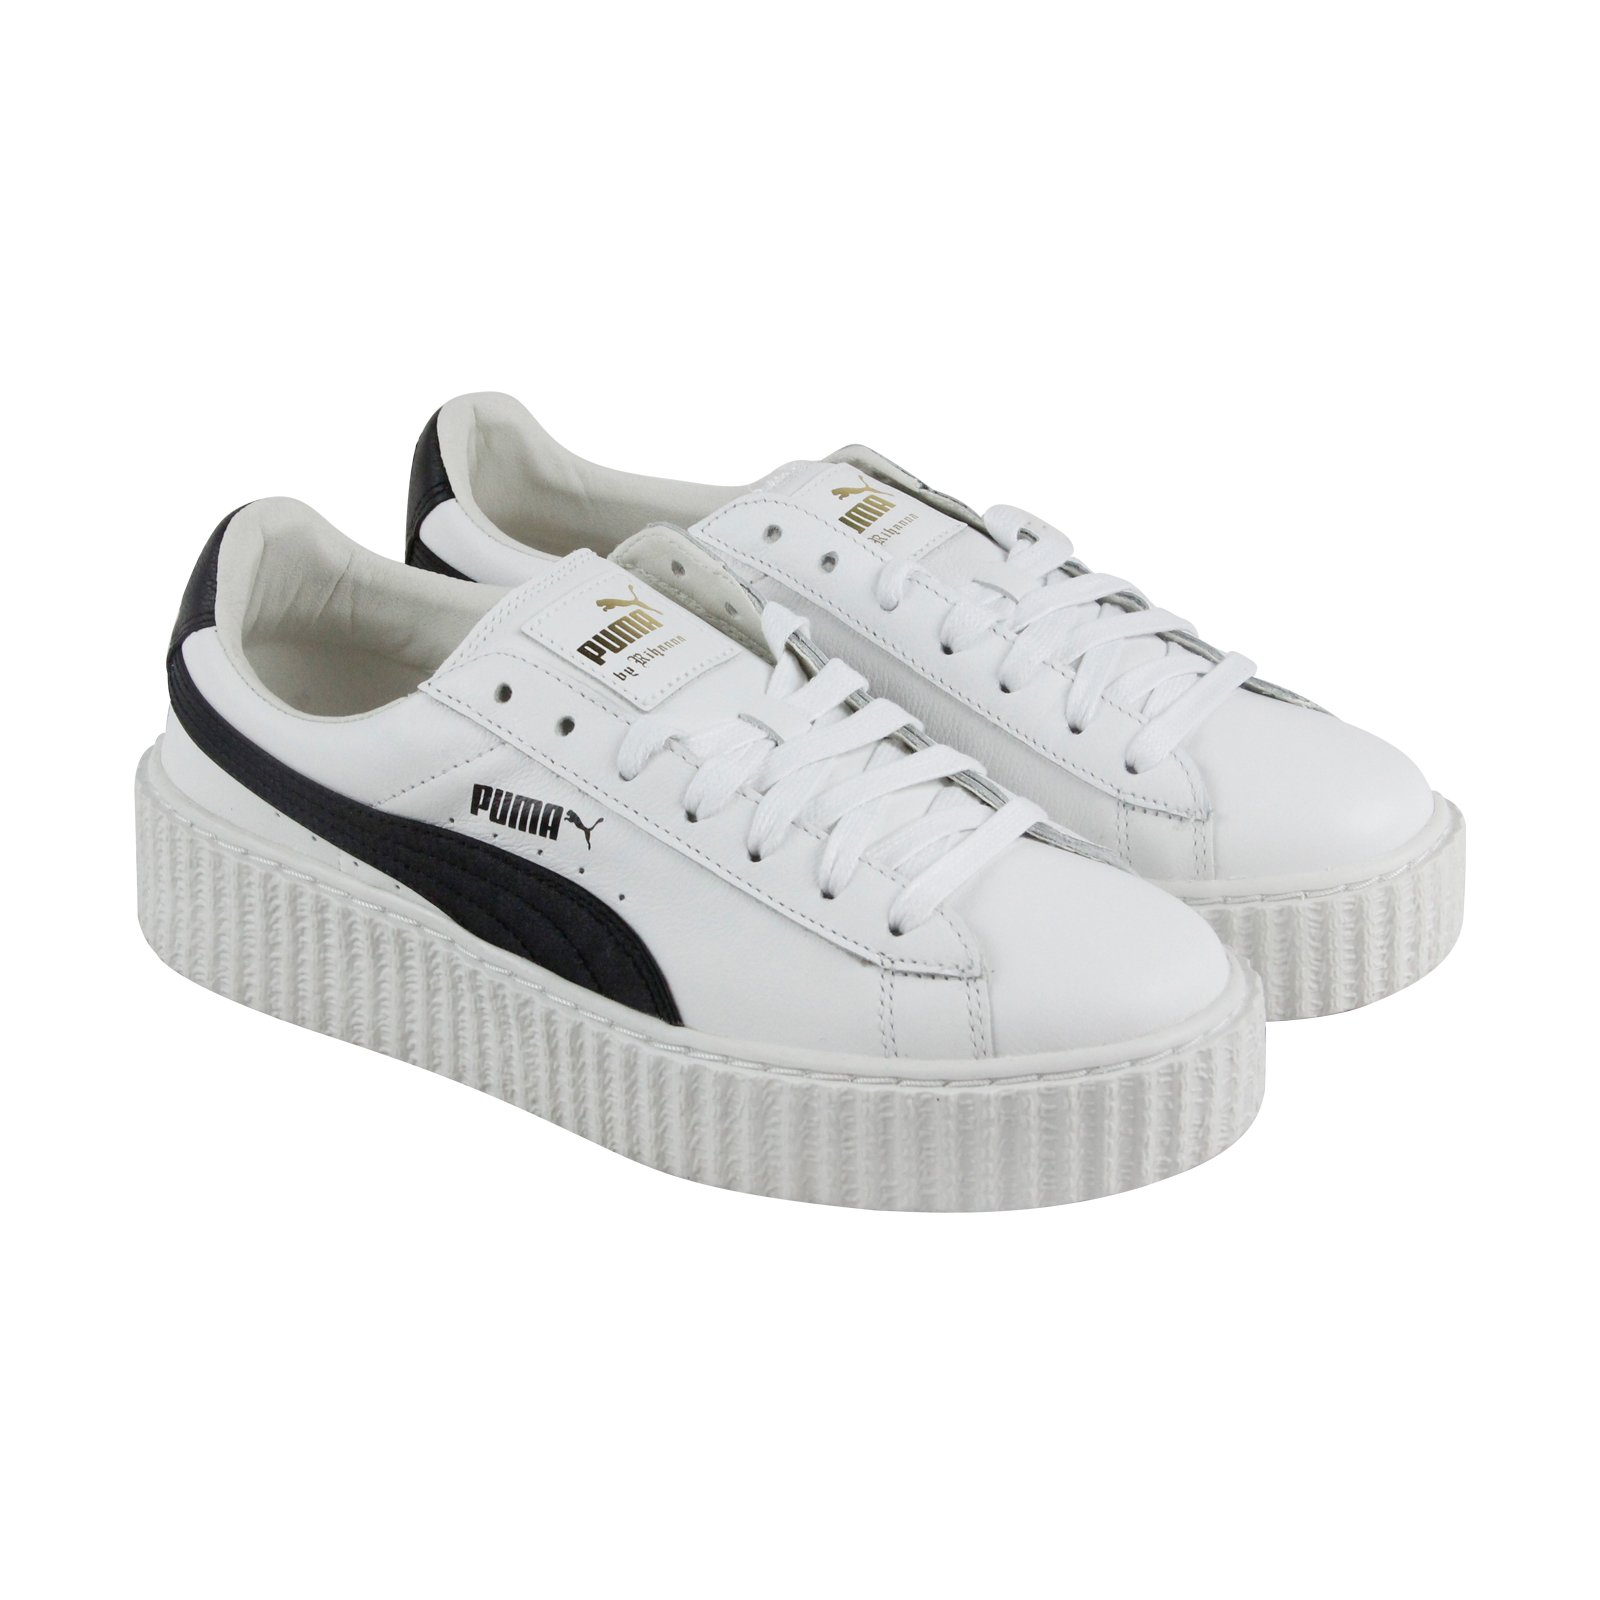 PUMA Women's Creeper White Black Athletic Shoe by PUMA